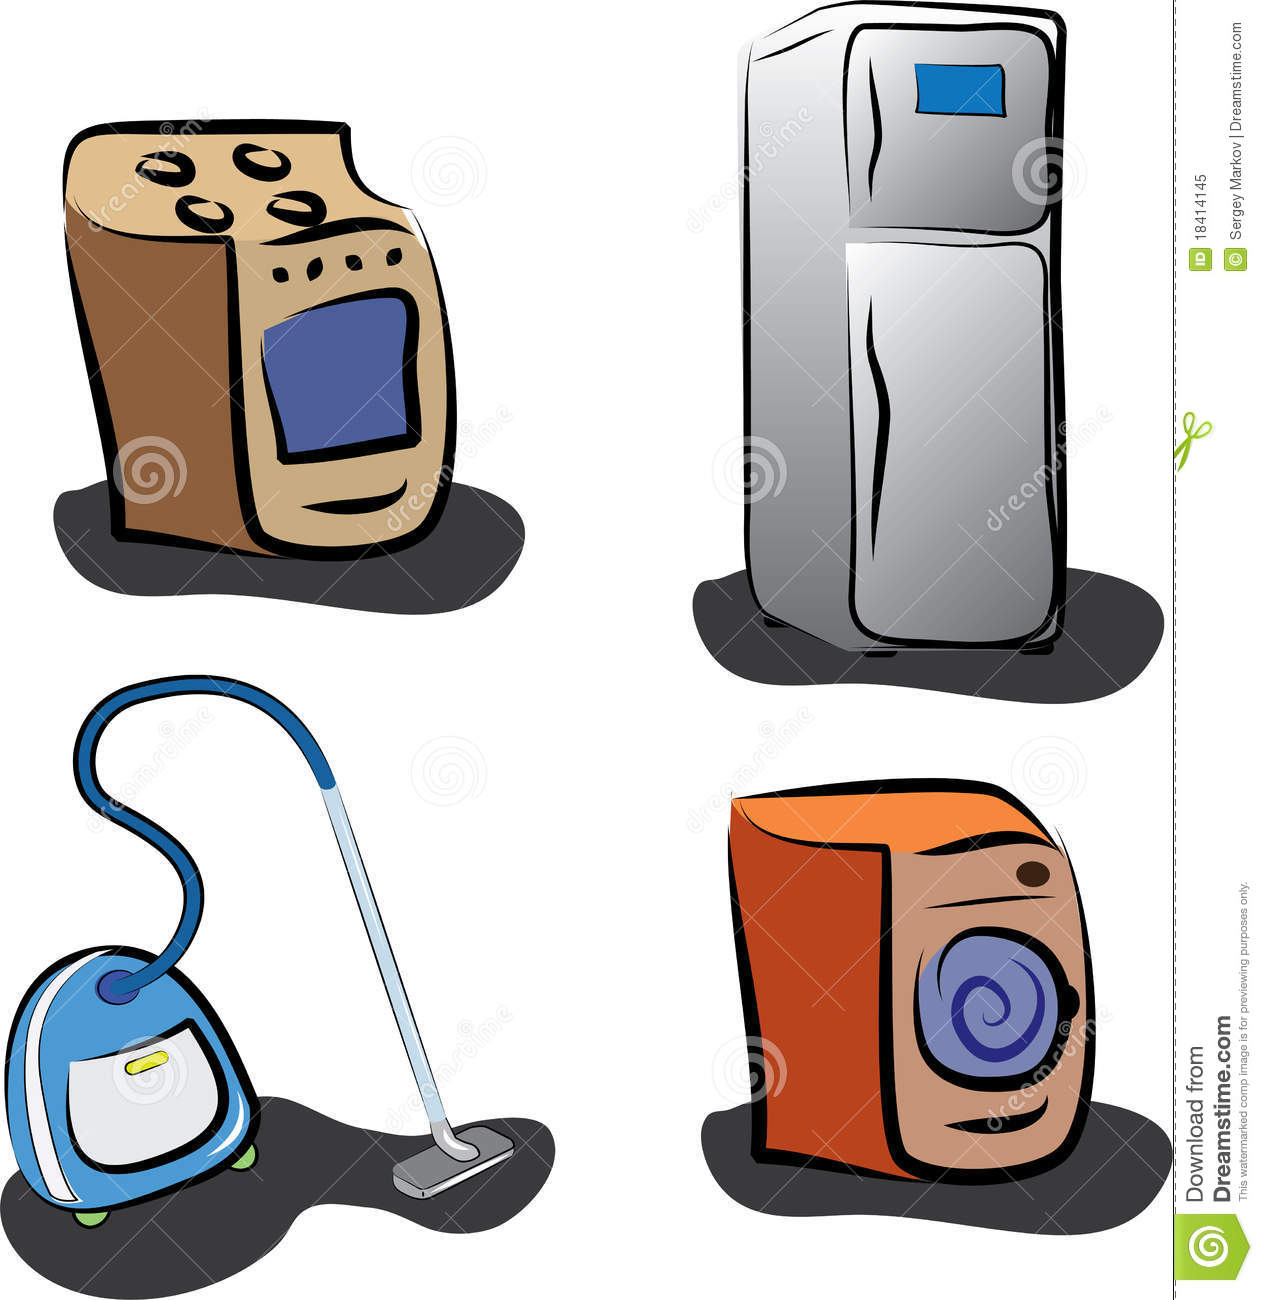 Kitchen Appliances Clip Art ~ Home appliances stock vector illustration of icon